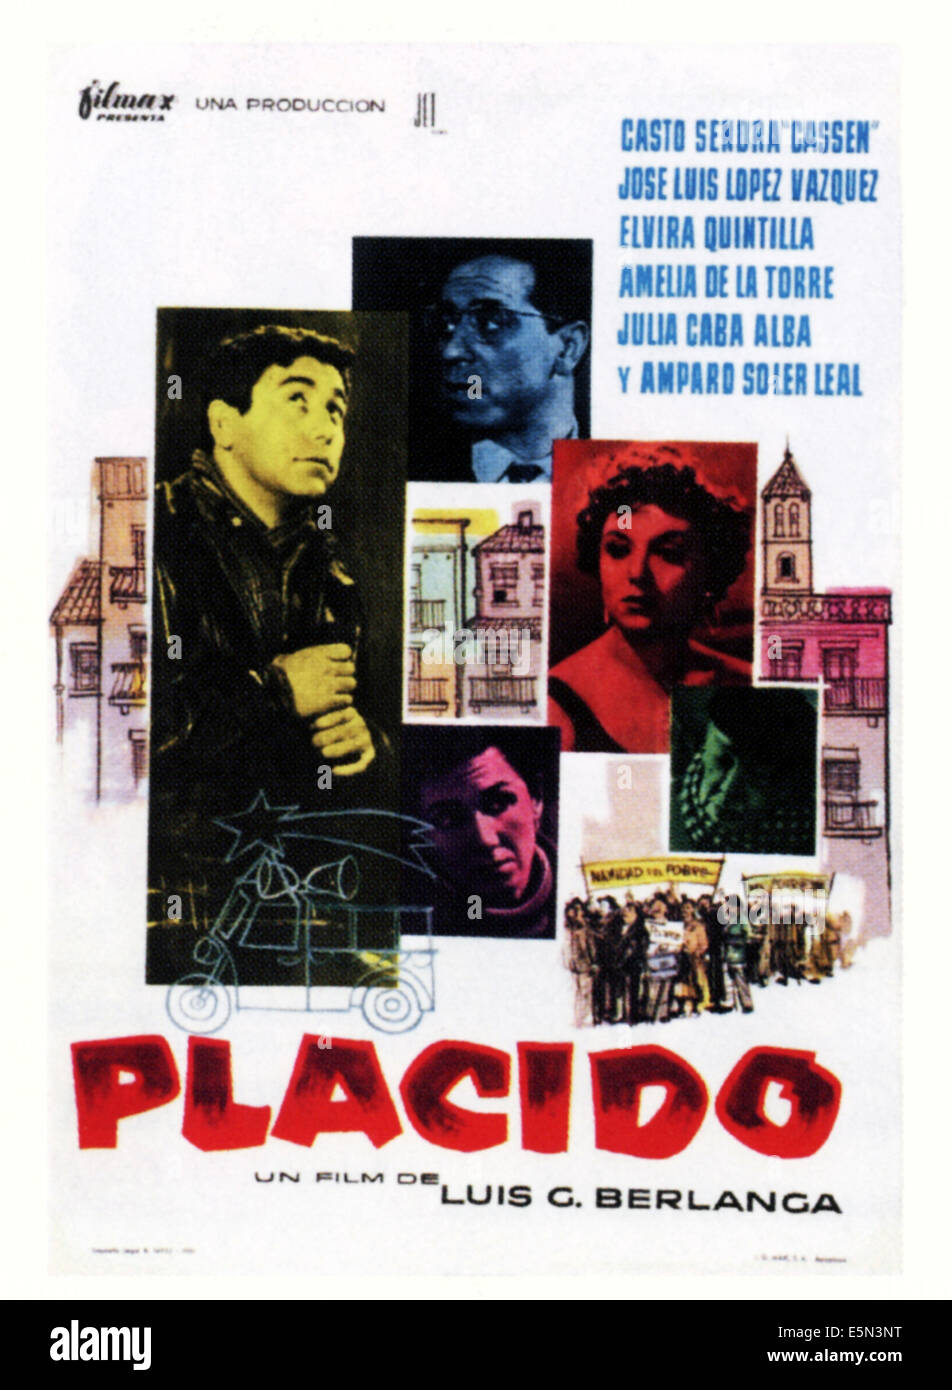 PLACIDO, Spanish poster art, 1961 - Stock Image